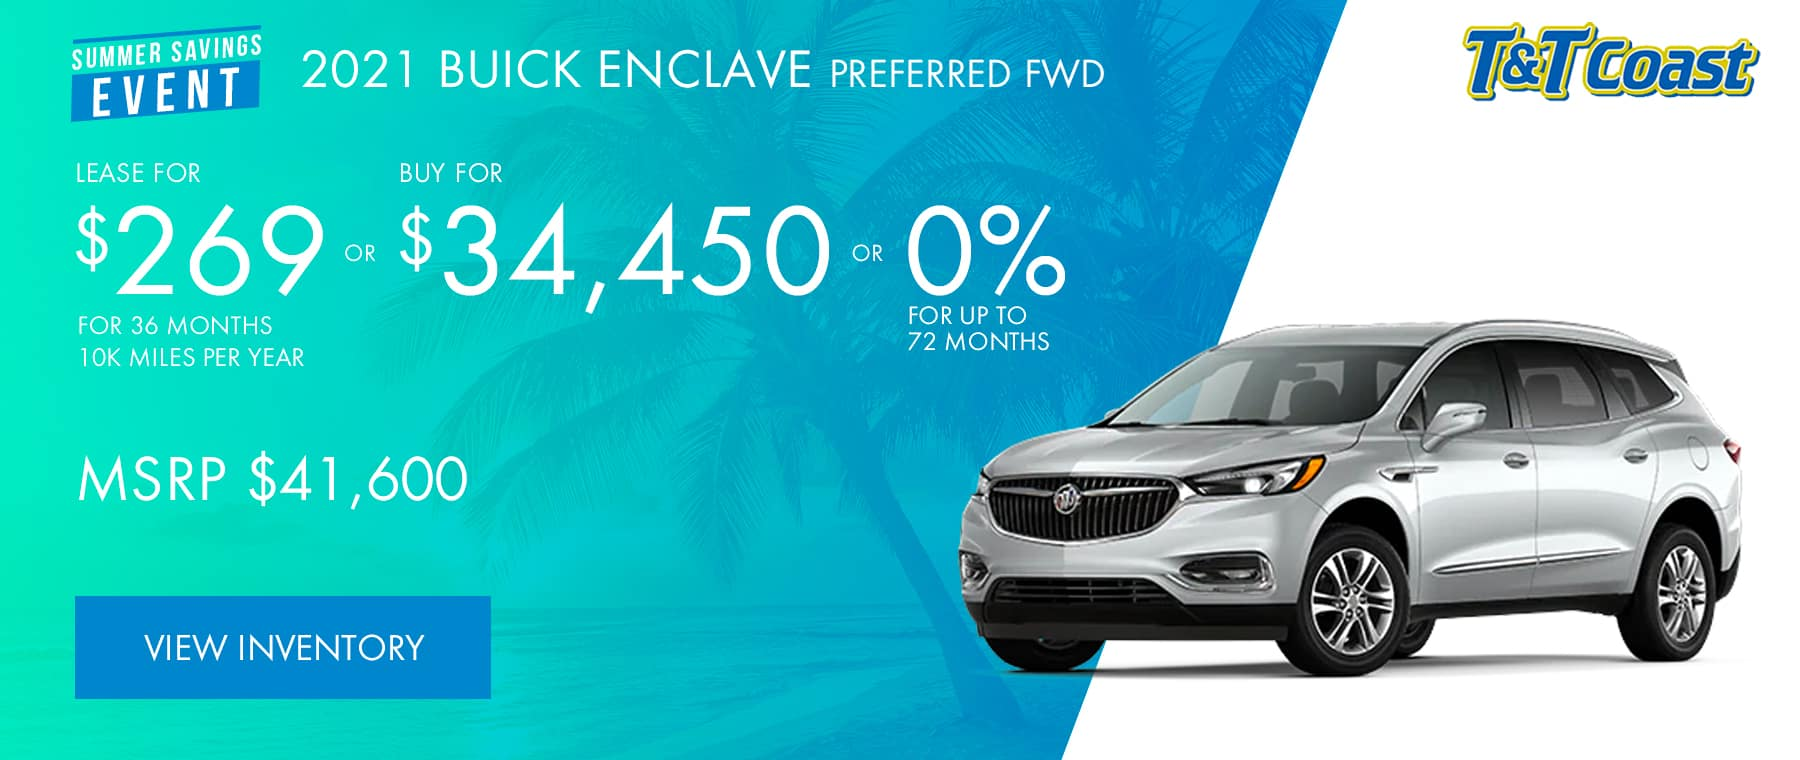 2021 BUICK ENCLAVE ESSENCE FWD Subtitle: MSRP $41,600 $269/MONTH LEASE!* For 36 Months /10K Miles/Year OR BUY FOR$34,450 OR 0% for up to 72 months